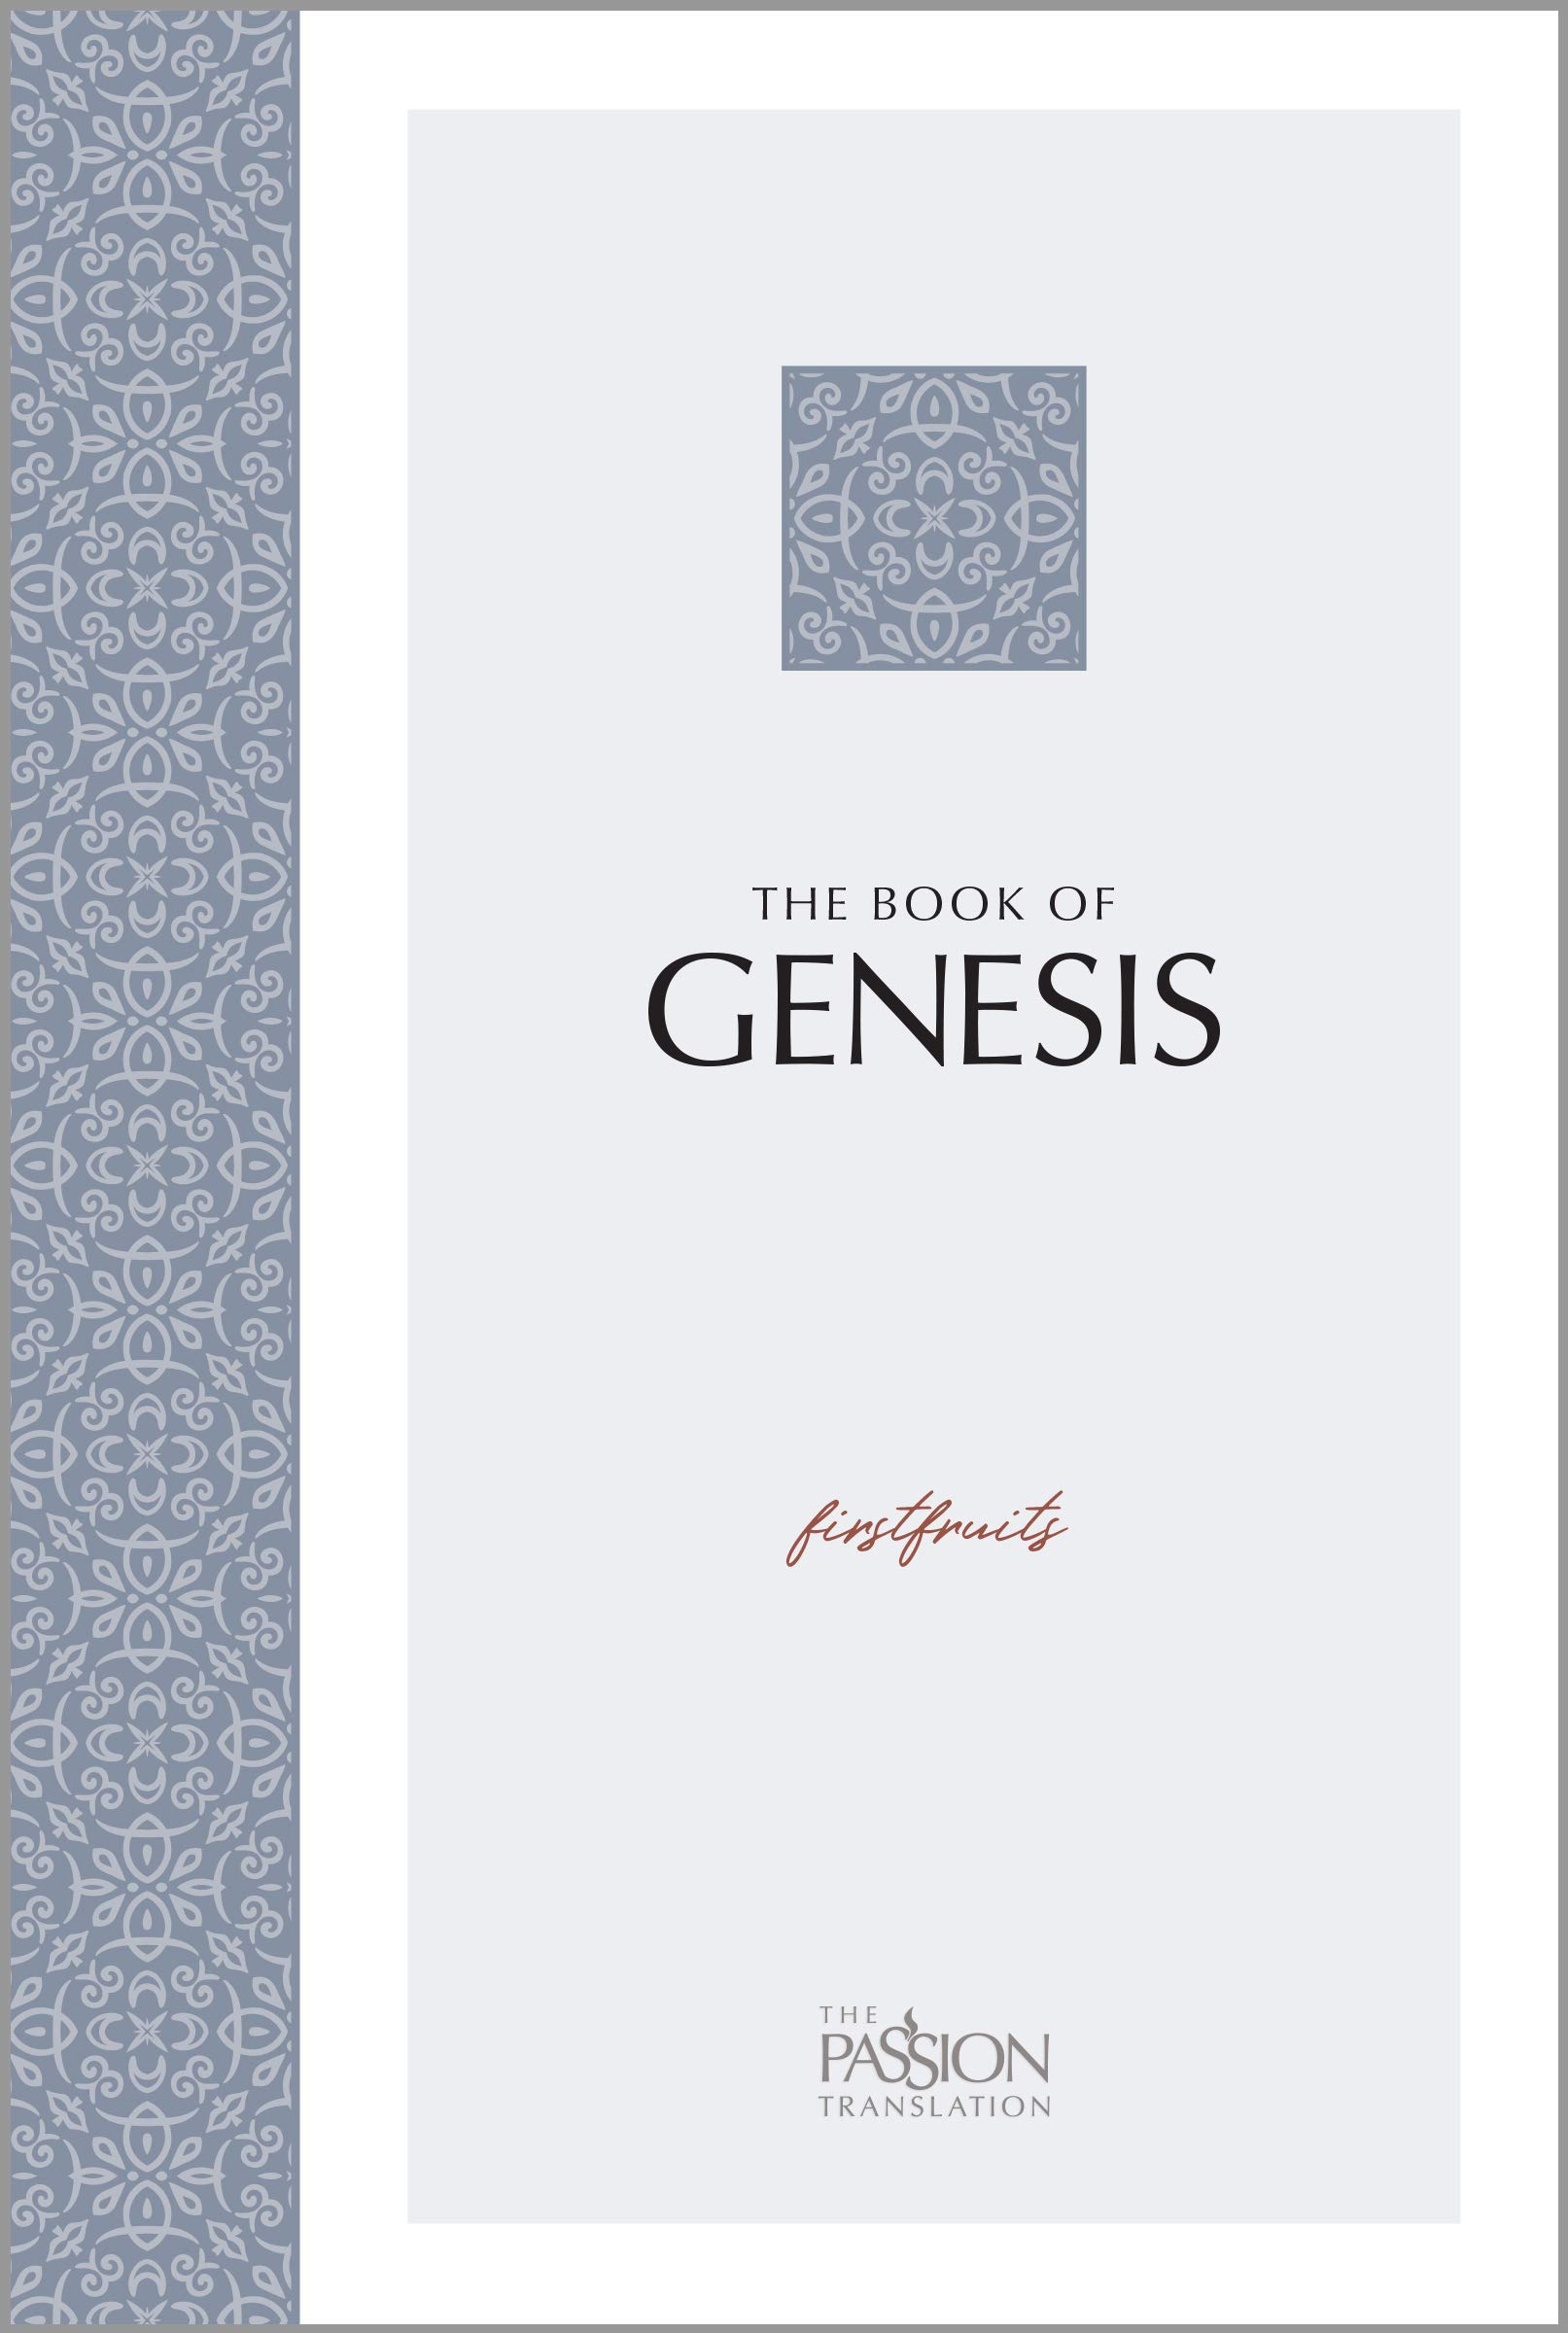 The Book of Genesis: Firstfruits (The Passion Translation) (Paperback) – A Heartfelt Translation of the Book of Genesis…